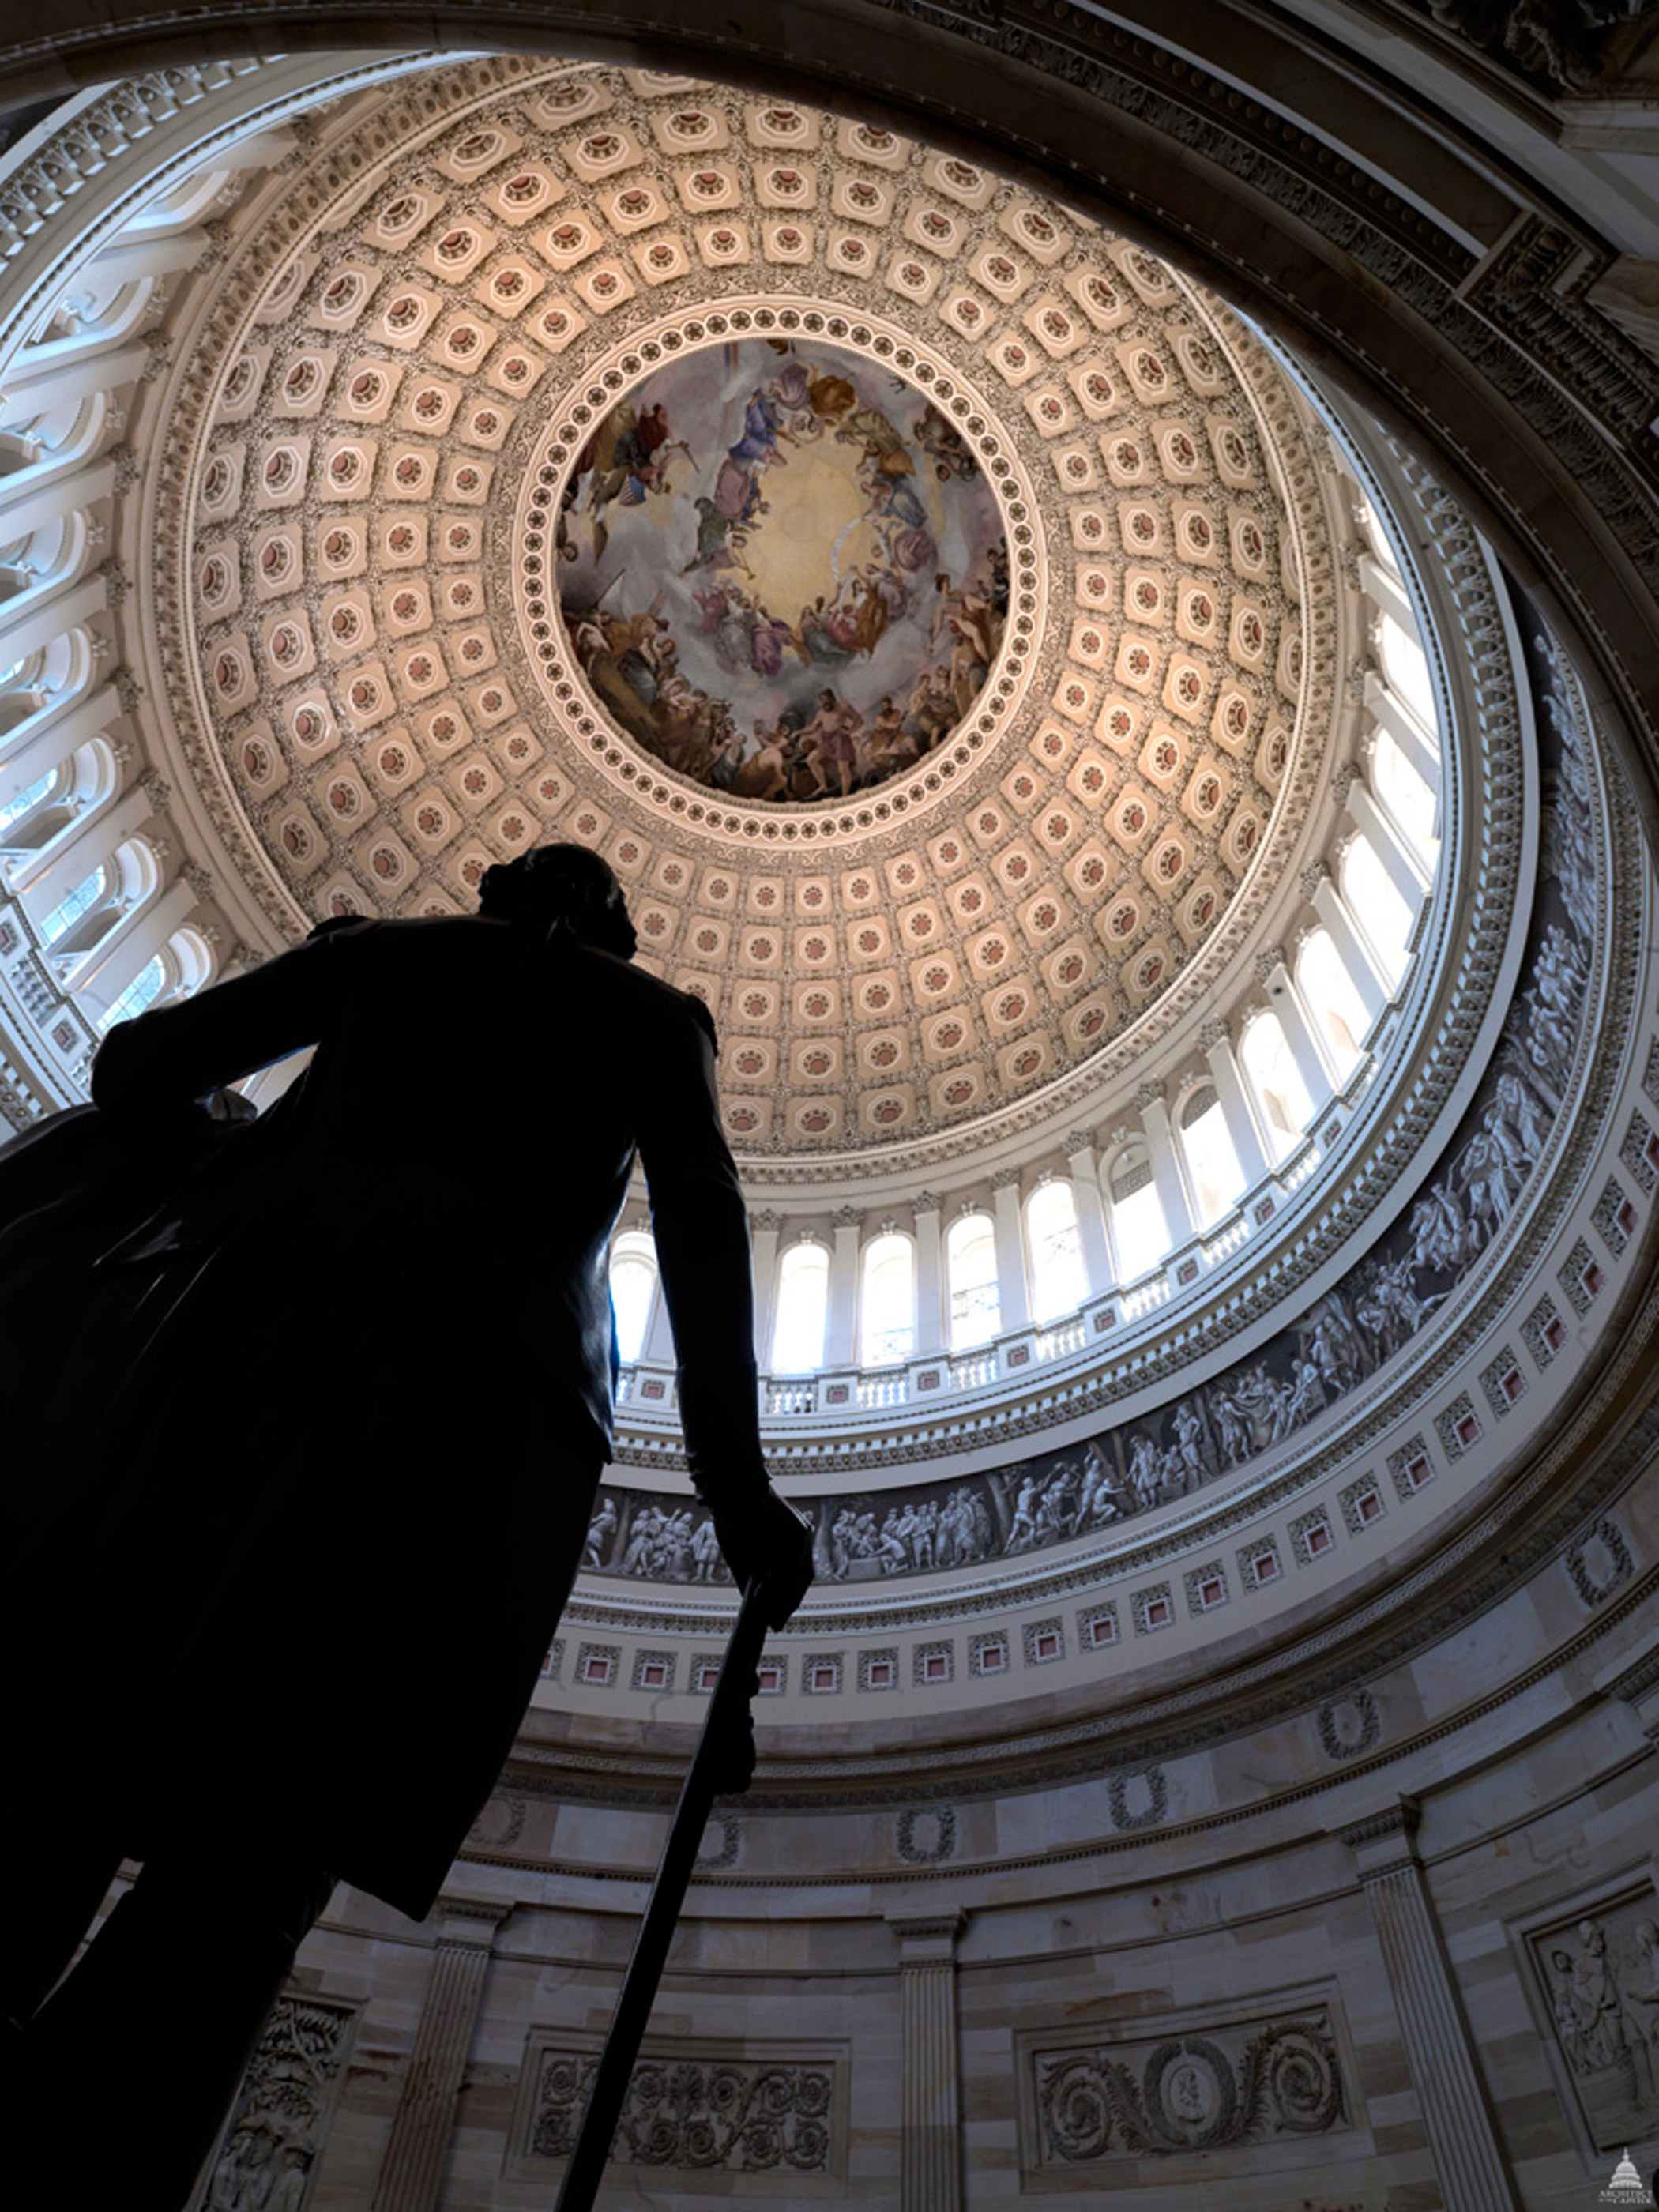 A view from the statue of George Washington in the Rotunda of the U.S. Capitol Building, showing Constantino Brumidi's fresco The Apotheosis of Washington.